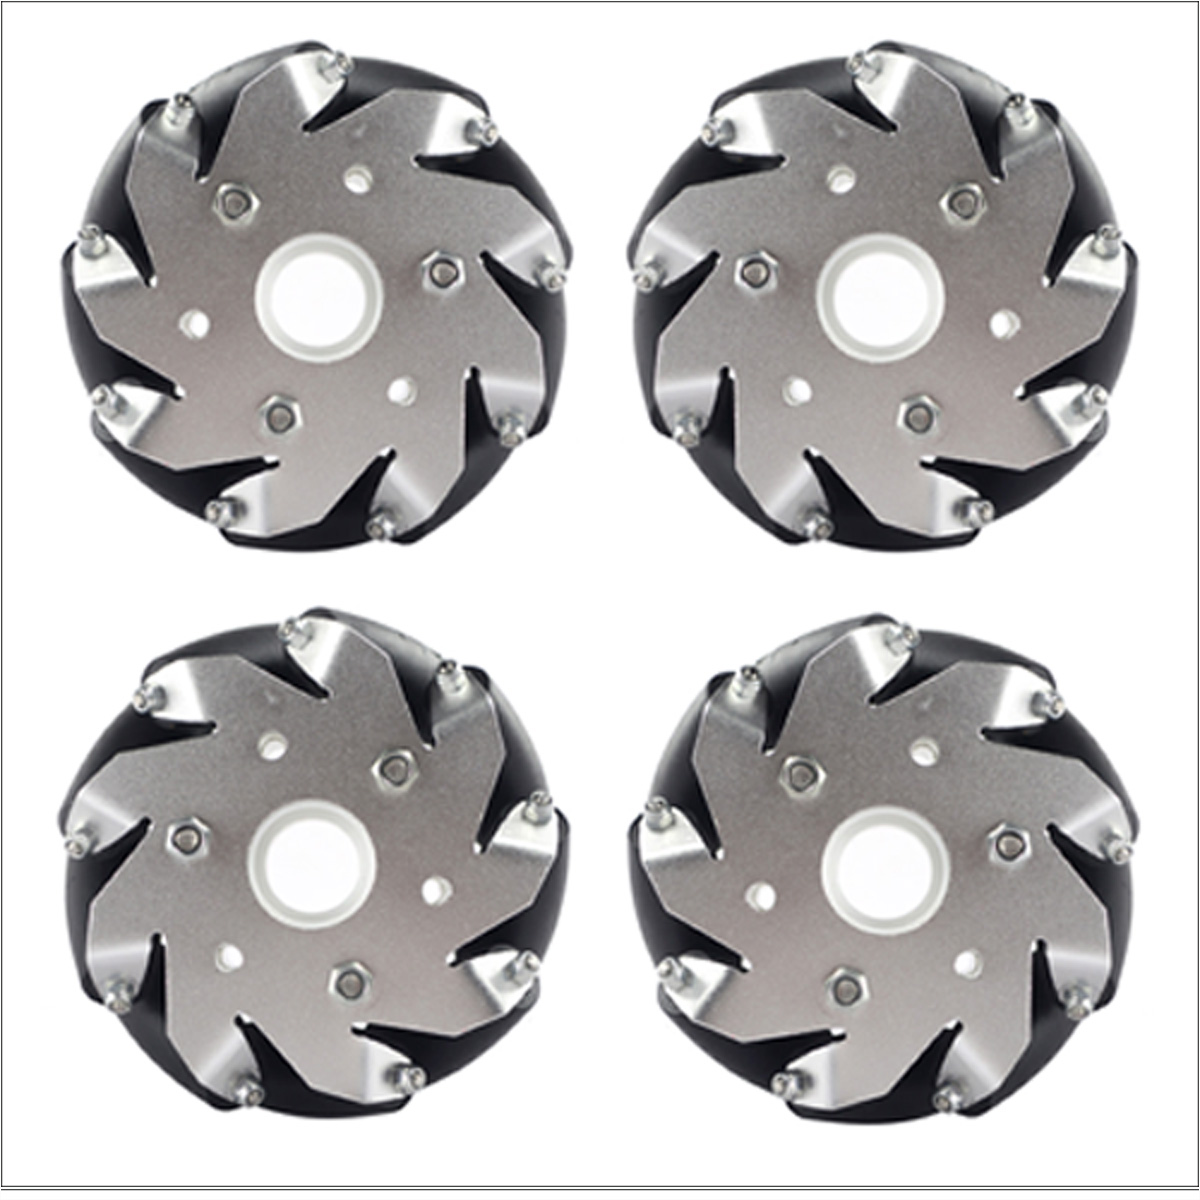 A Group of (4) 4 Inch 100 Mm Universal Wheels 14162 100mm Mecanum Wheel Caster / Omni Wheel 4 inch 100mm aluminum mecanum wheels set basic 2 left 2 right for robot car 14162